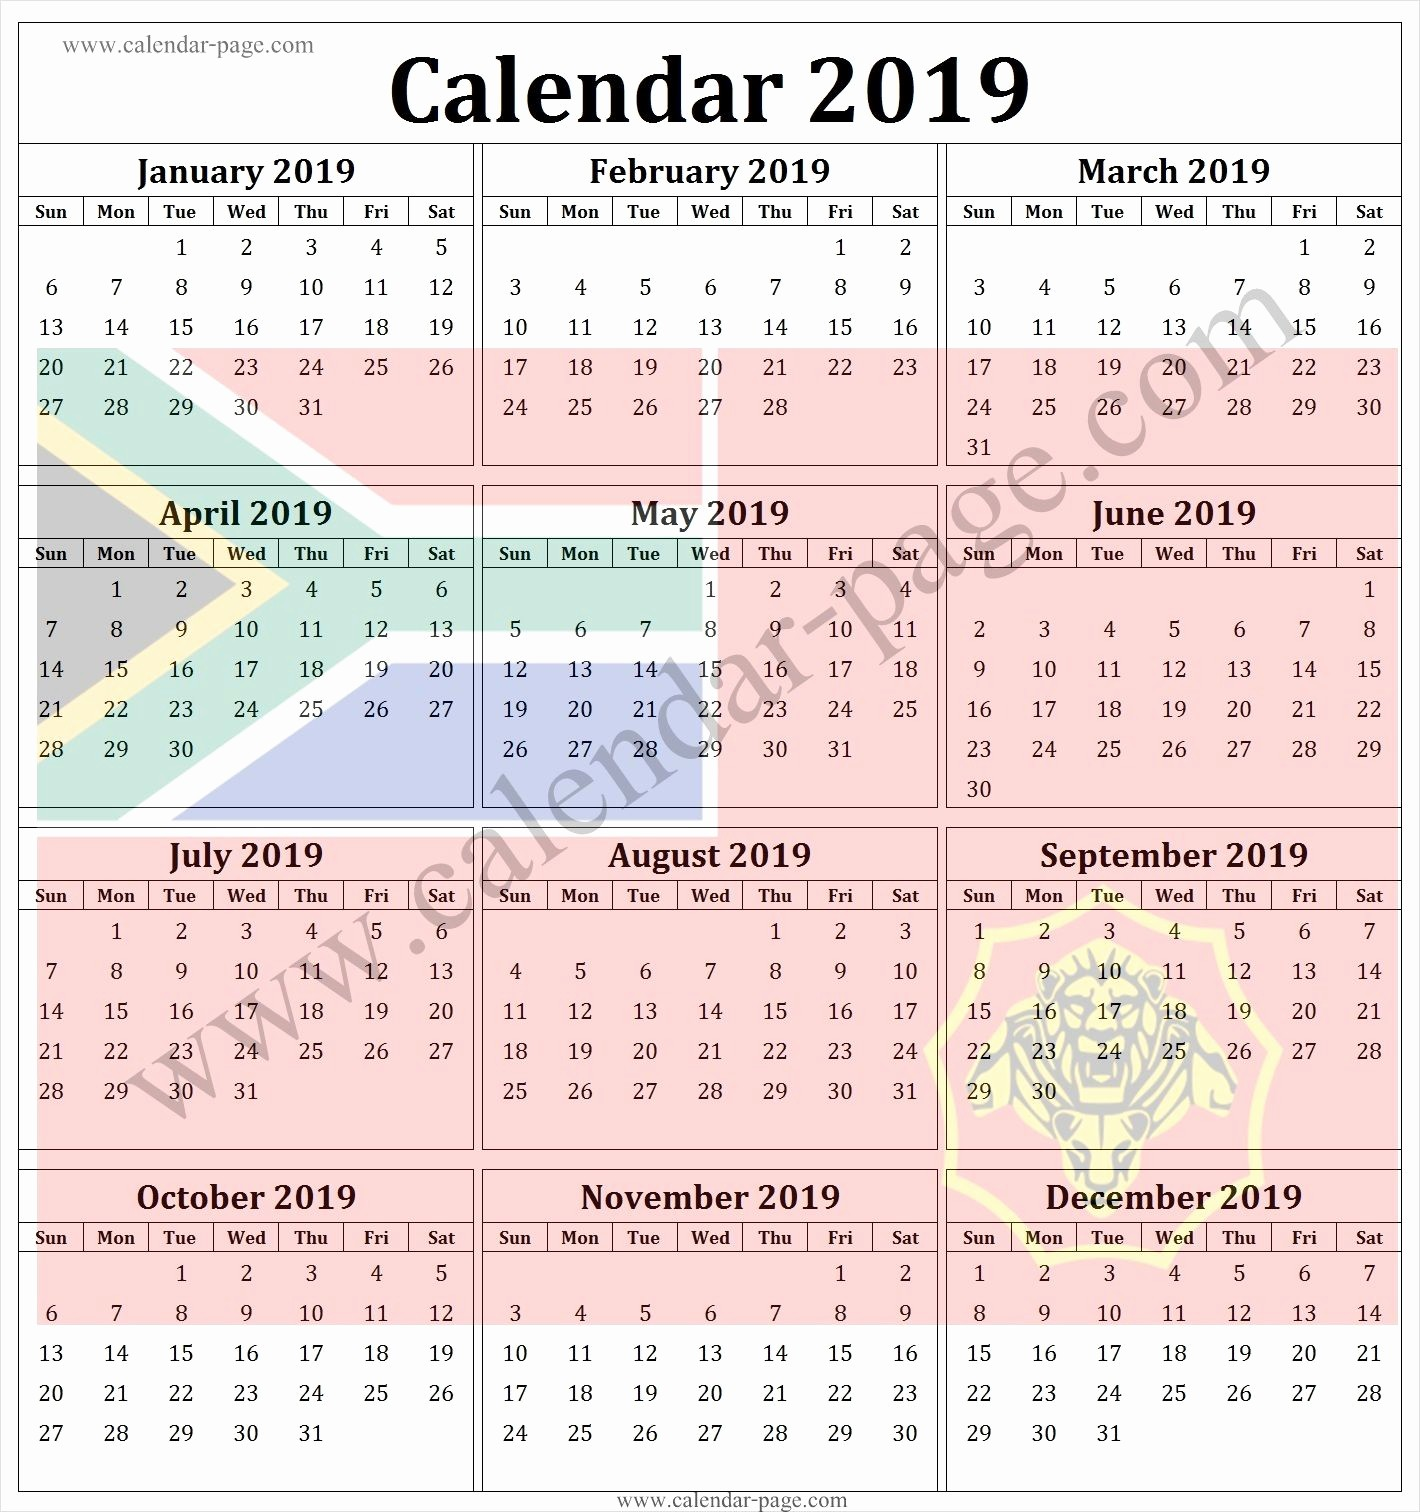 2019 Yearly Calendar with Holidays Best Of south Africa 2019 Calendar with Public Holidays